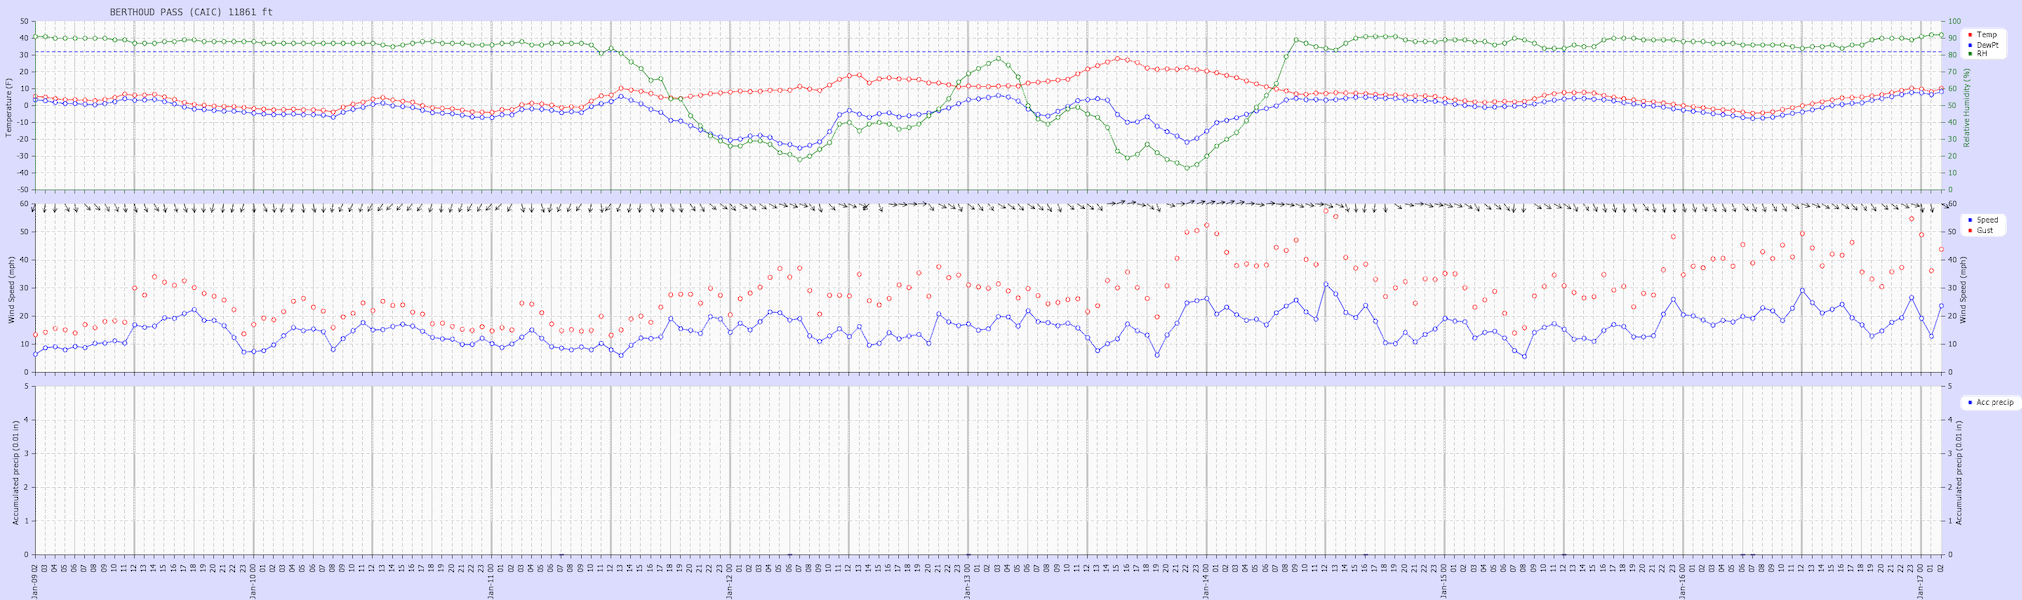 <b>Figure 14:</b> Weather graph from the Colorado Avalanche Information Center station at Berthoud Pass 11,861 feet. This is the closest wind station to the avalanche accident. It is 7.6 miles to the west. This was a very windy period across the Front Range. Prior to the accident, winds were from the  northwest with hourly speeds between 15 and 25 mph, and gusts over 40 mph. (<a href=javascript:void(0); onClick=win=window.open('https://caic-production.imgix.net/96qh4or7pqg66n4ormp5rpnq9a0r?ixlib=php-3.1.0&s=c27a36d20c4a7d70274f559442bc229b','caic_media','resizable=1,height=820,width=840,scrollbars=yes');win.focus();return false;>see full sized image</a>)